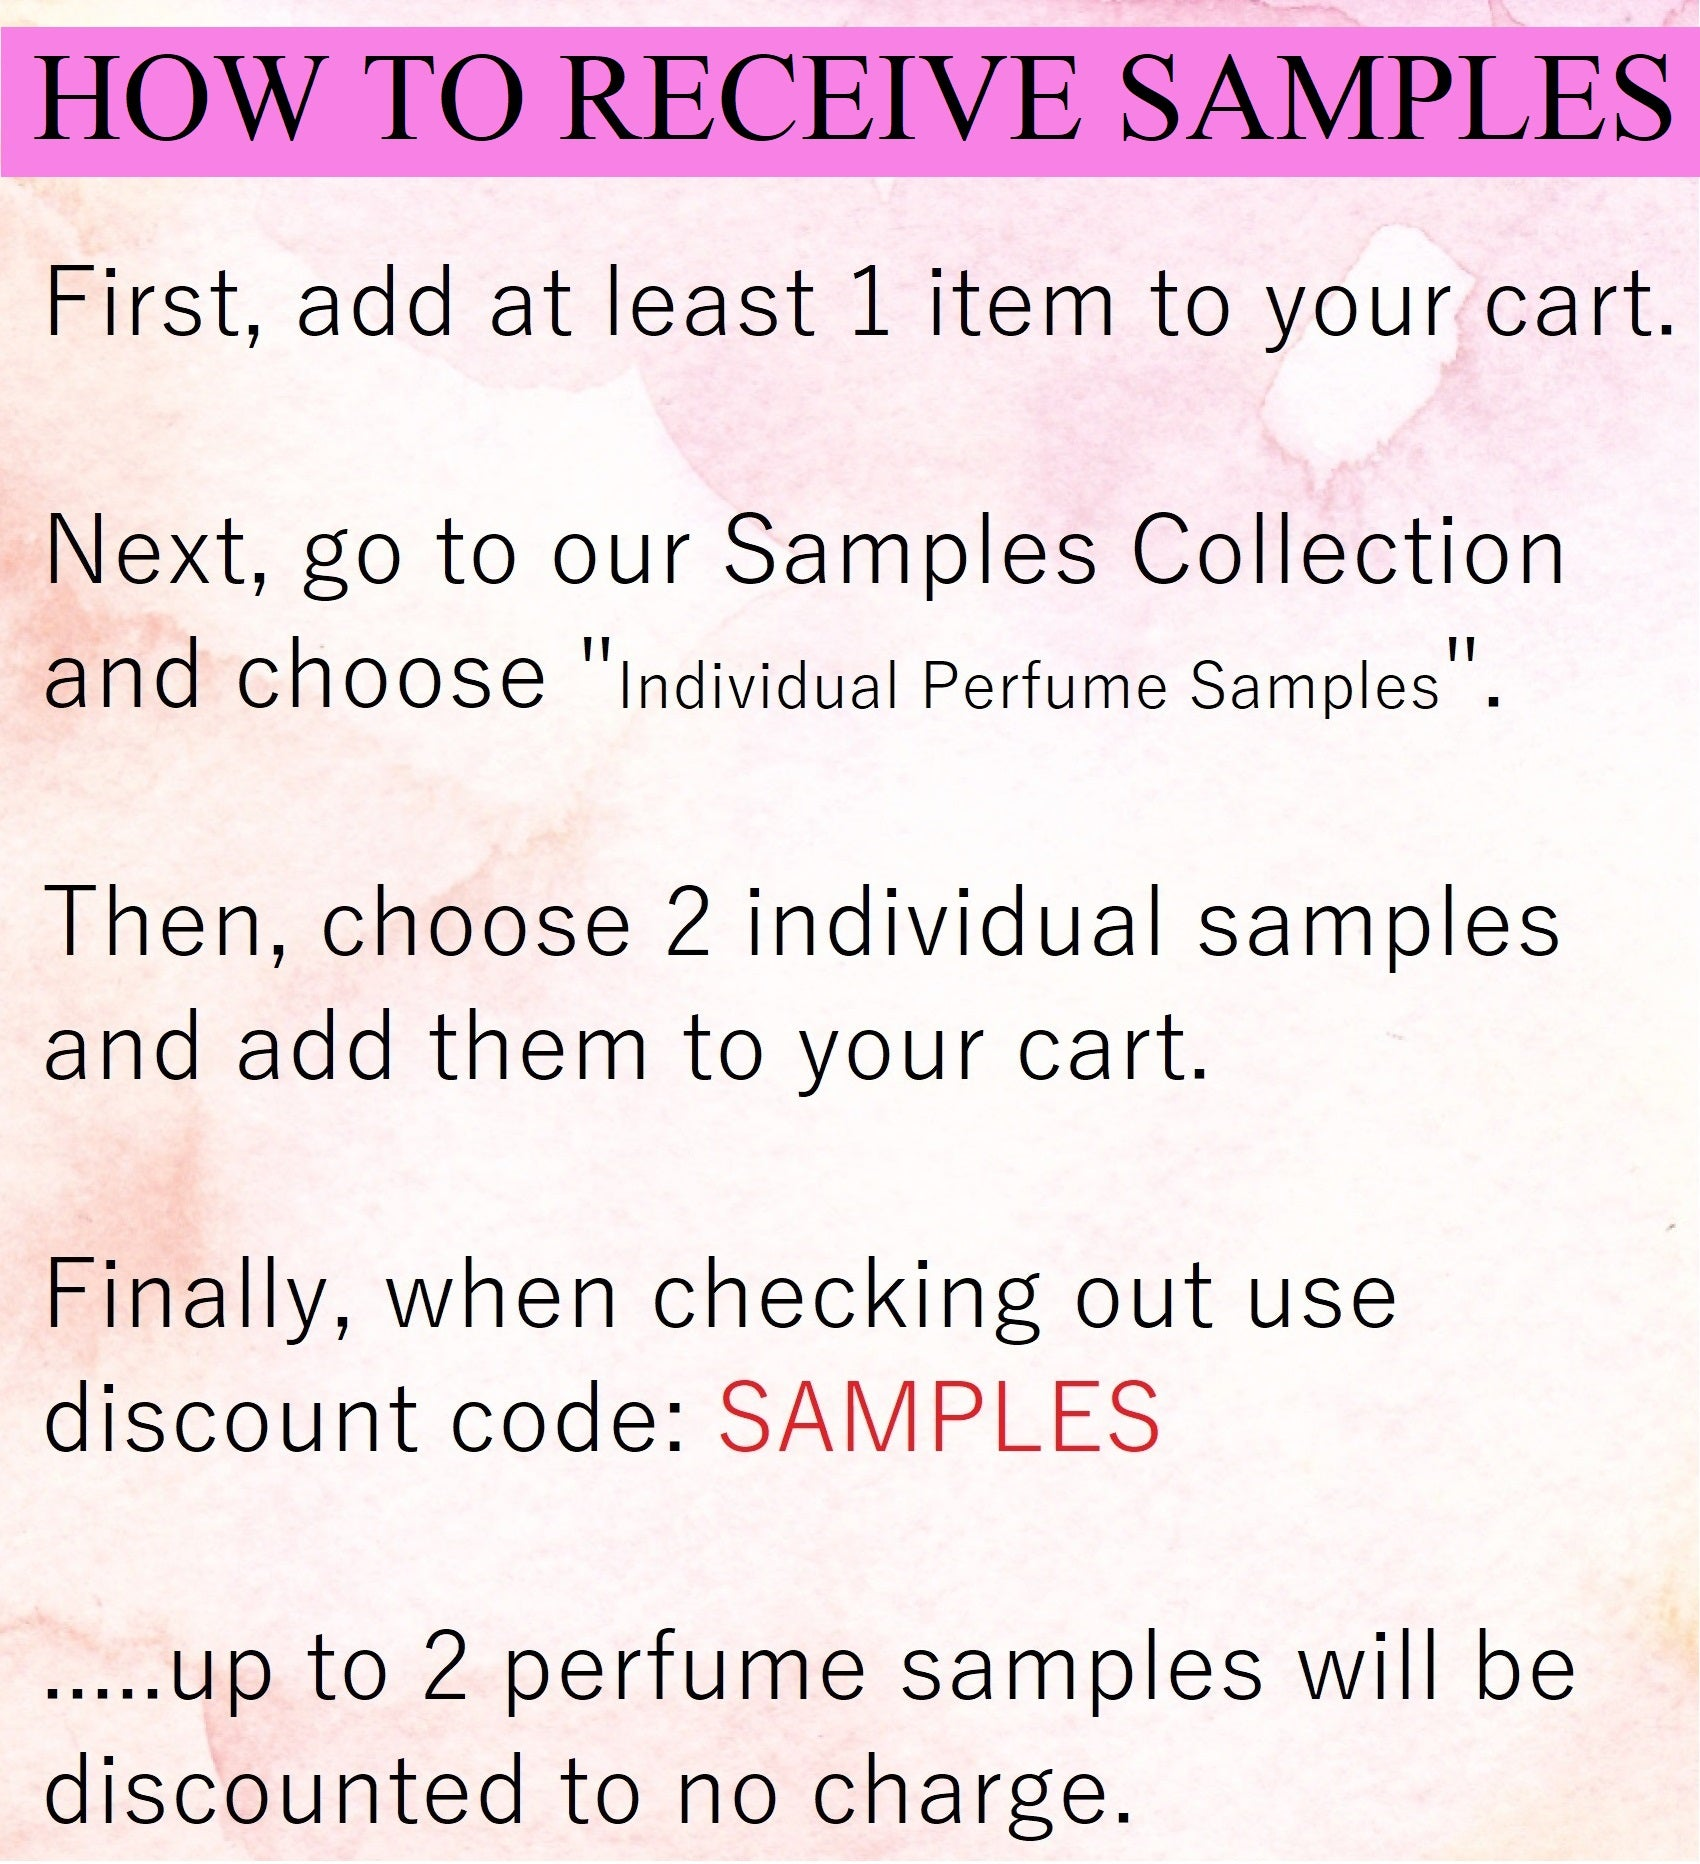 How to Receive Free Samples